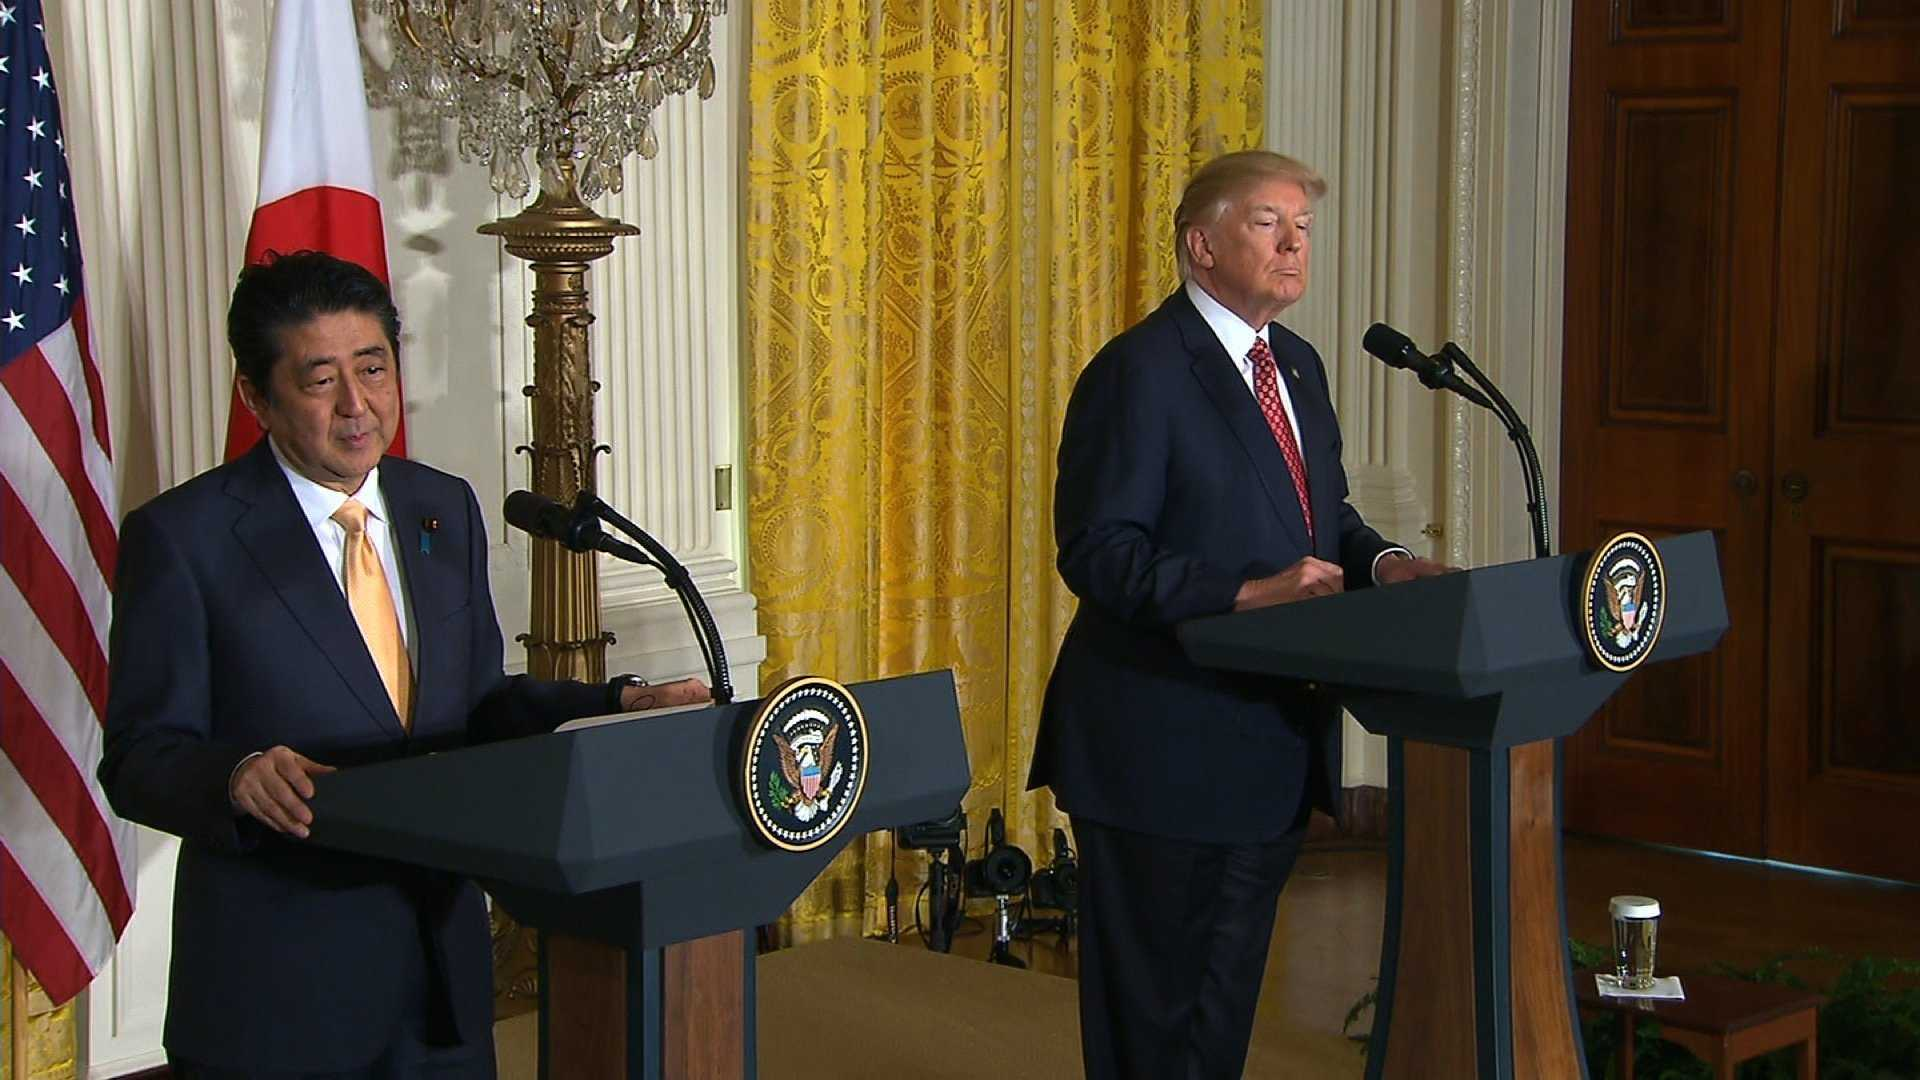 ​President Donald Trump and Japanese Prime Minister Shinzo Abe hold a joint press conference Friday, Feb. 10, 2017.